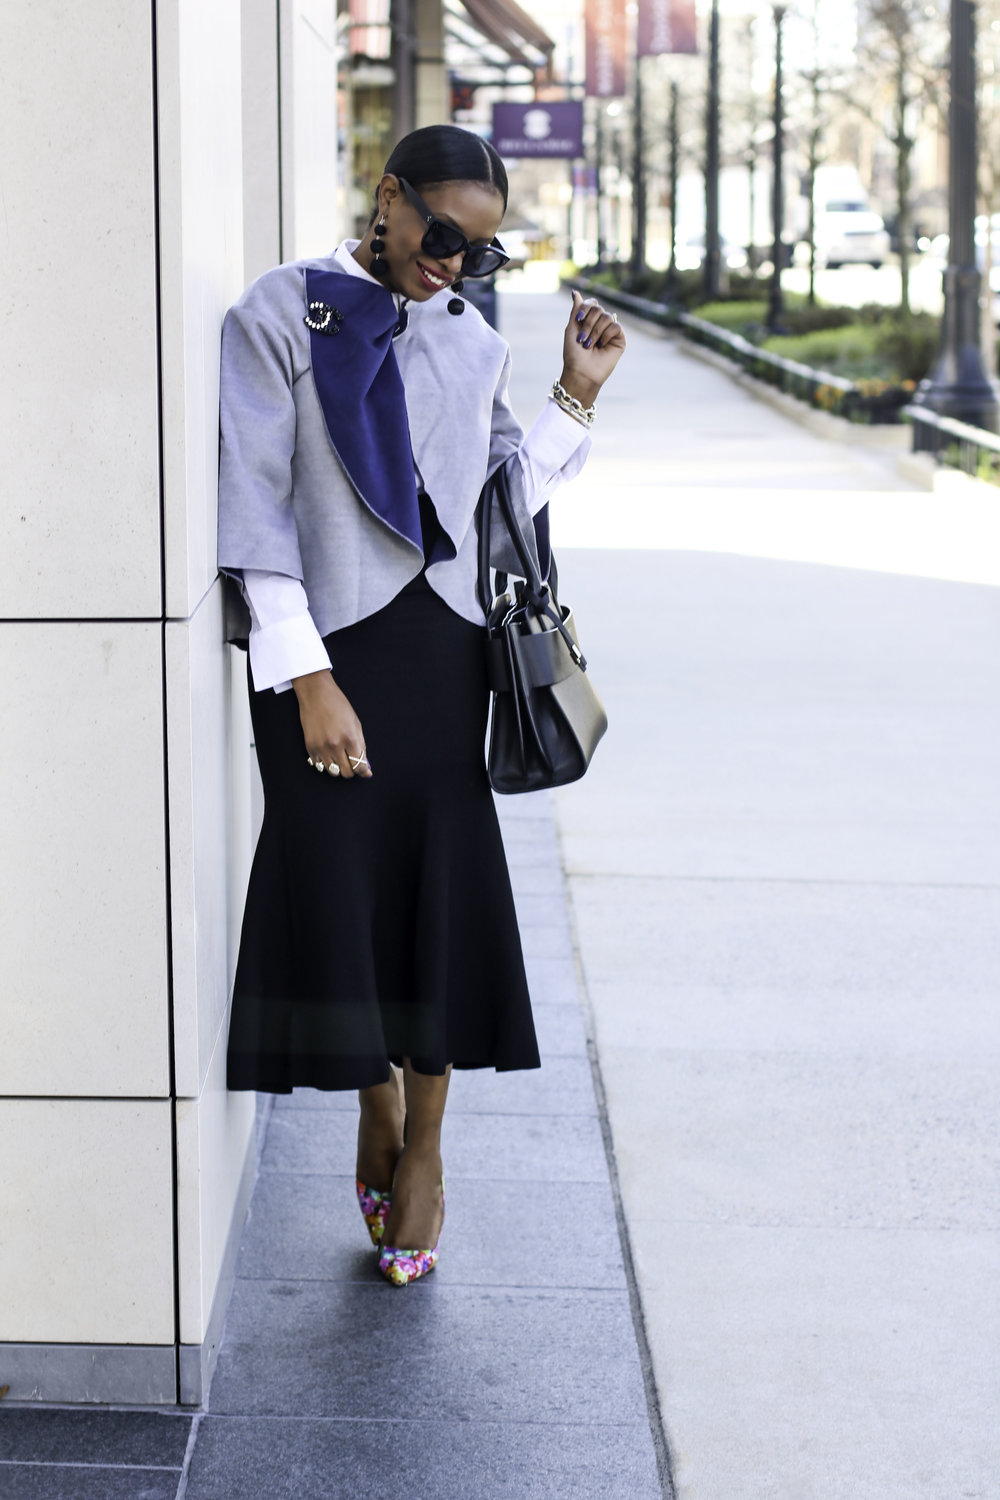 FASHION BLOGGER WEARING THE PERFECT SKIRT.jpg